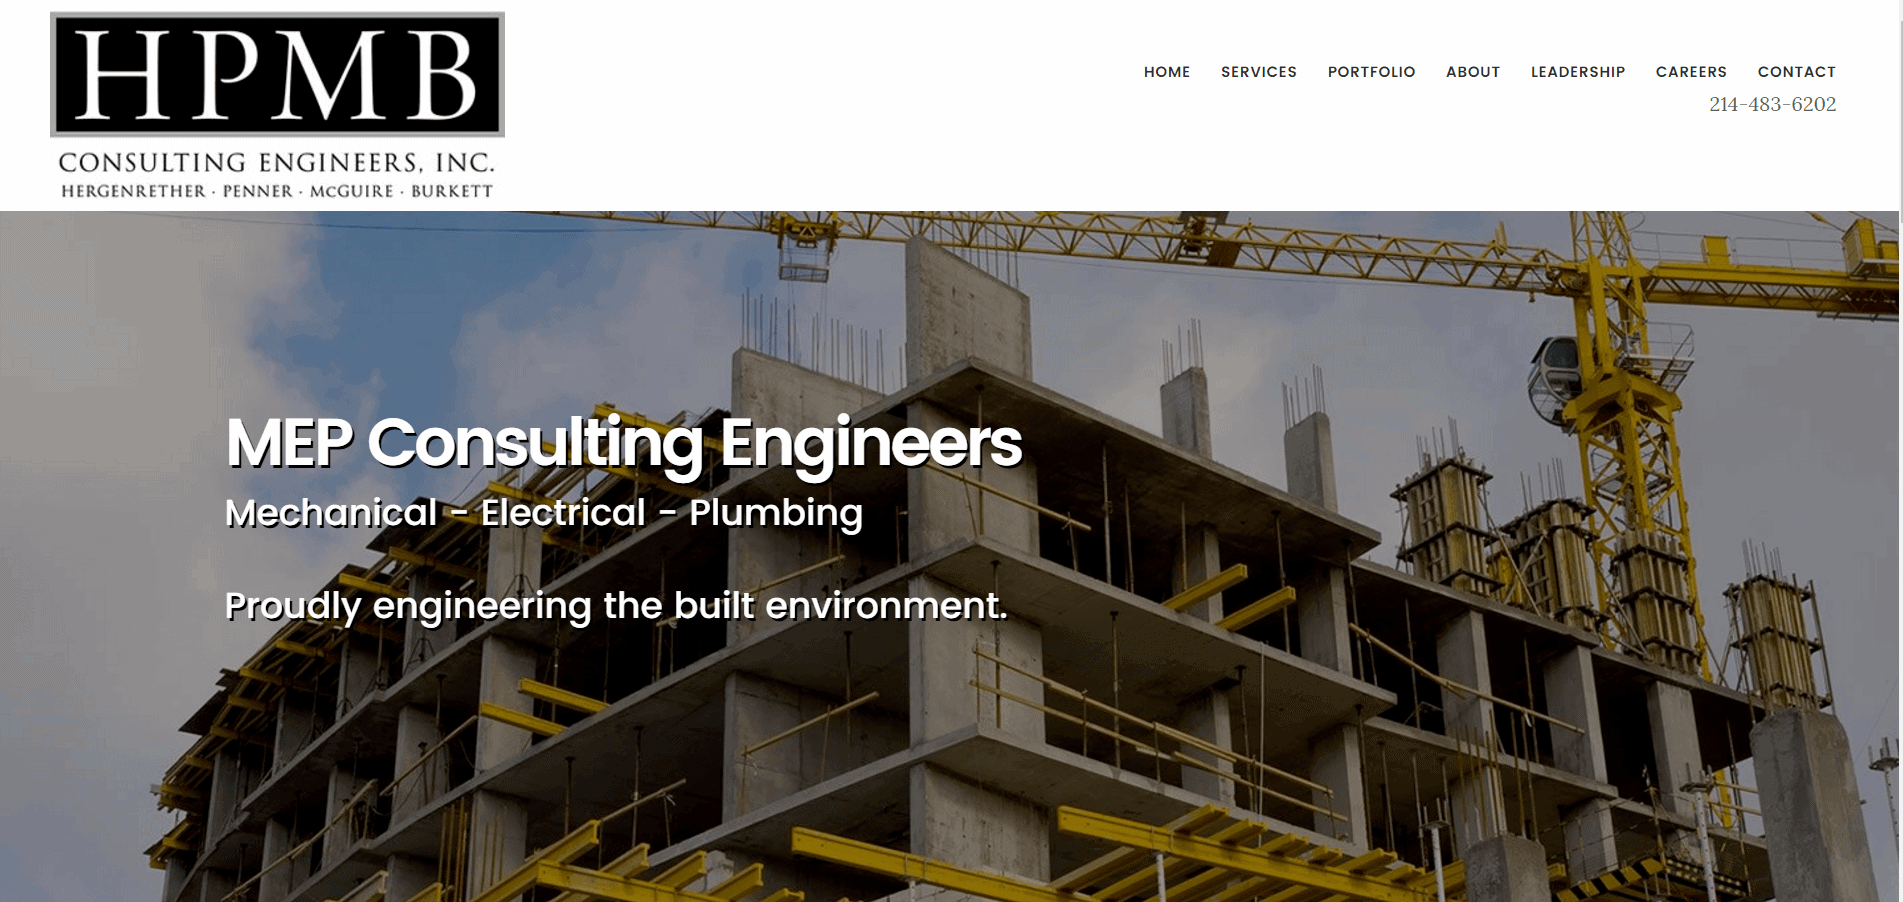 A screenshot of HPMB website showing a crane next to a building with heading MEP Consulting Engineers